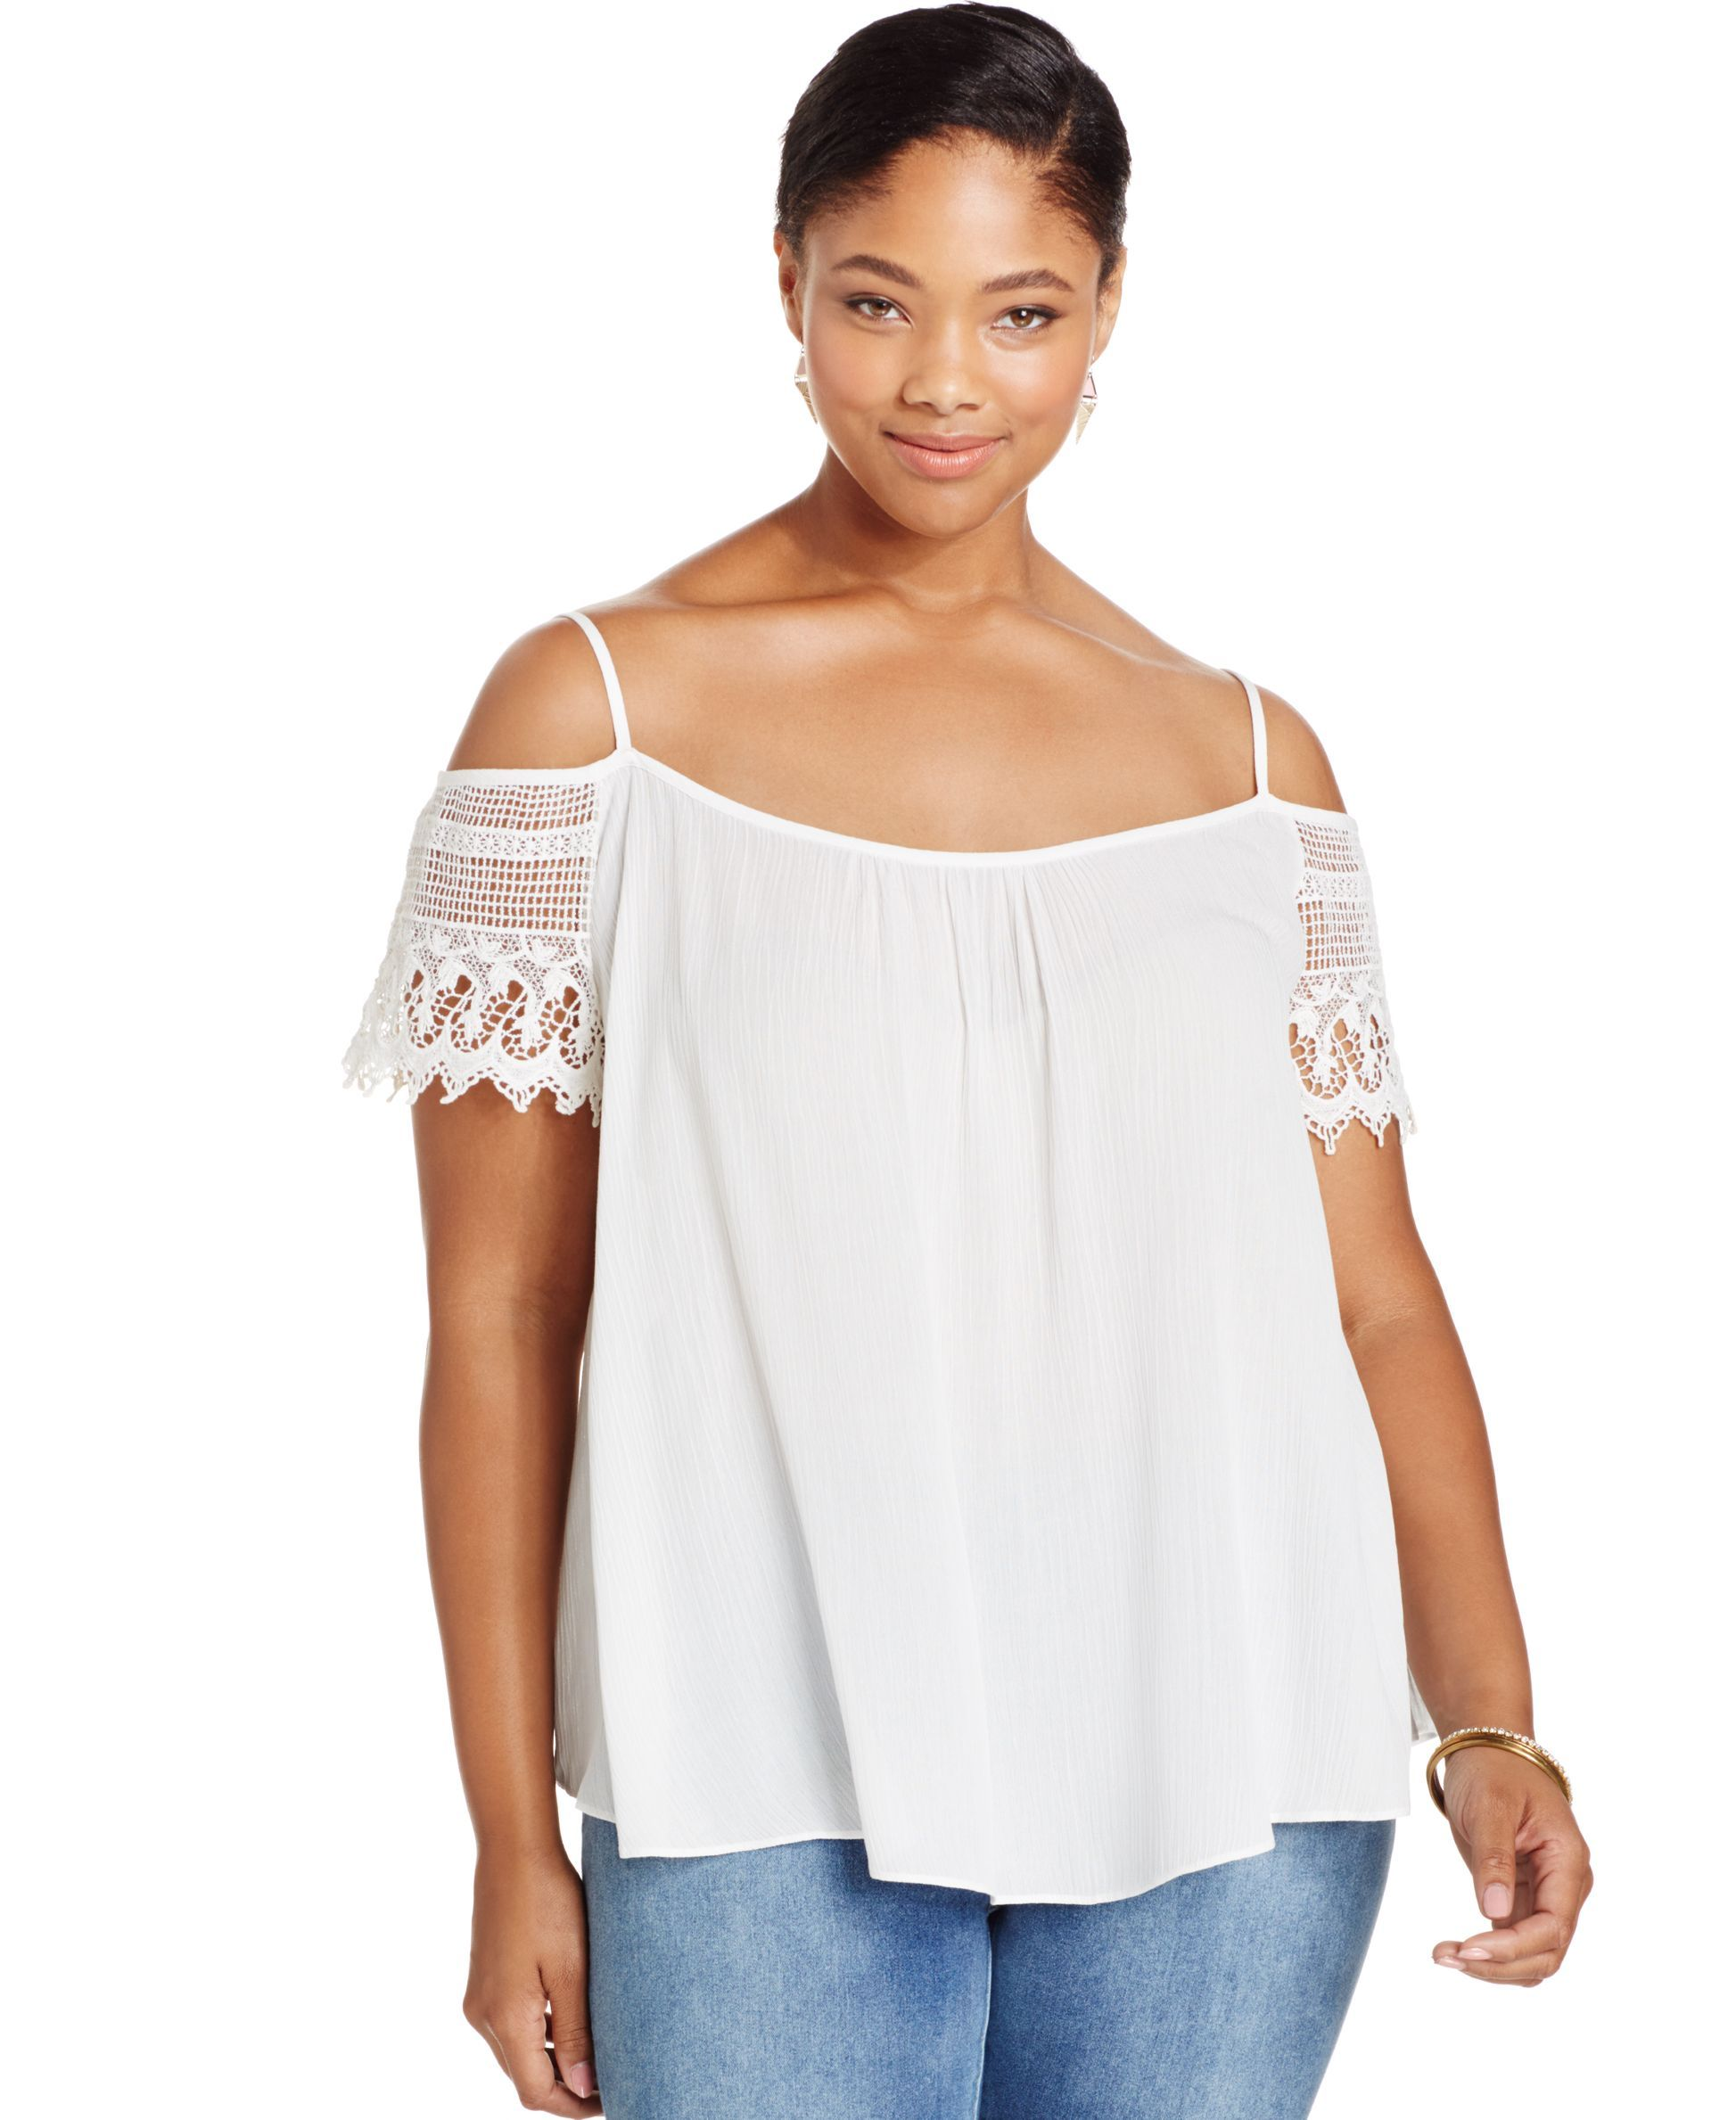 eafedca0101d3f Ing Plus Size Lace Cold-Shoulder Top